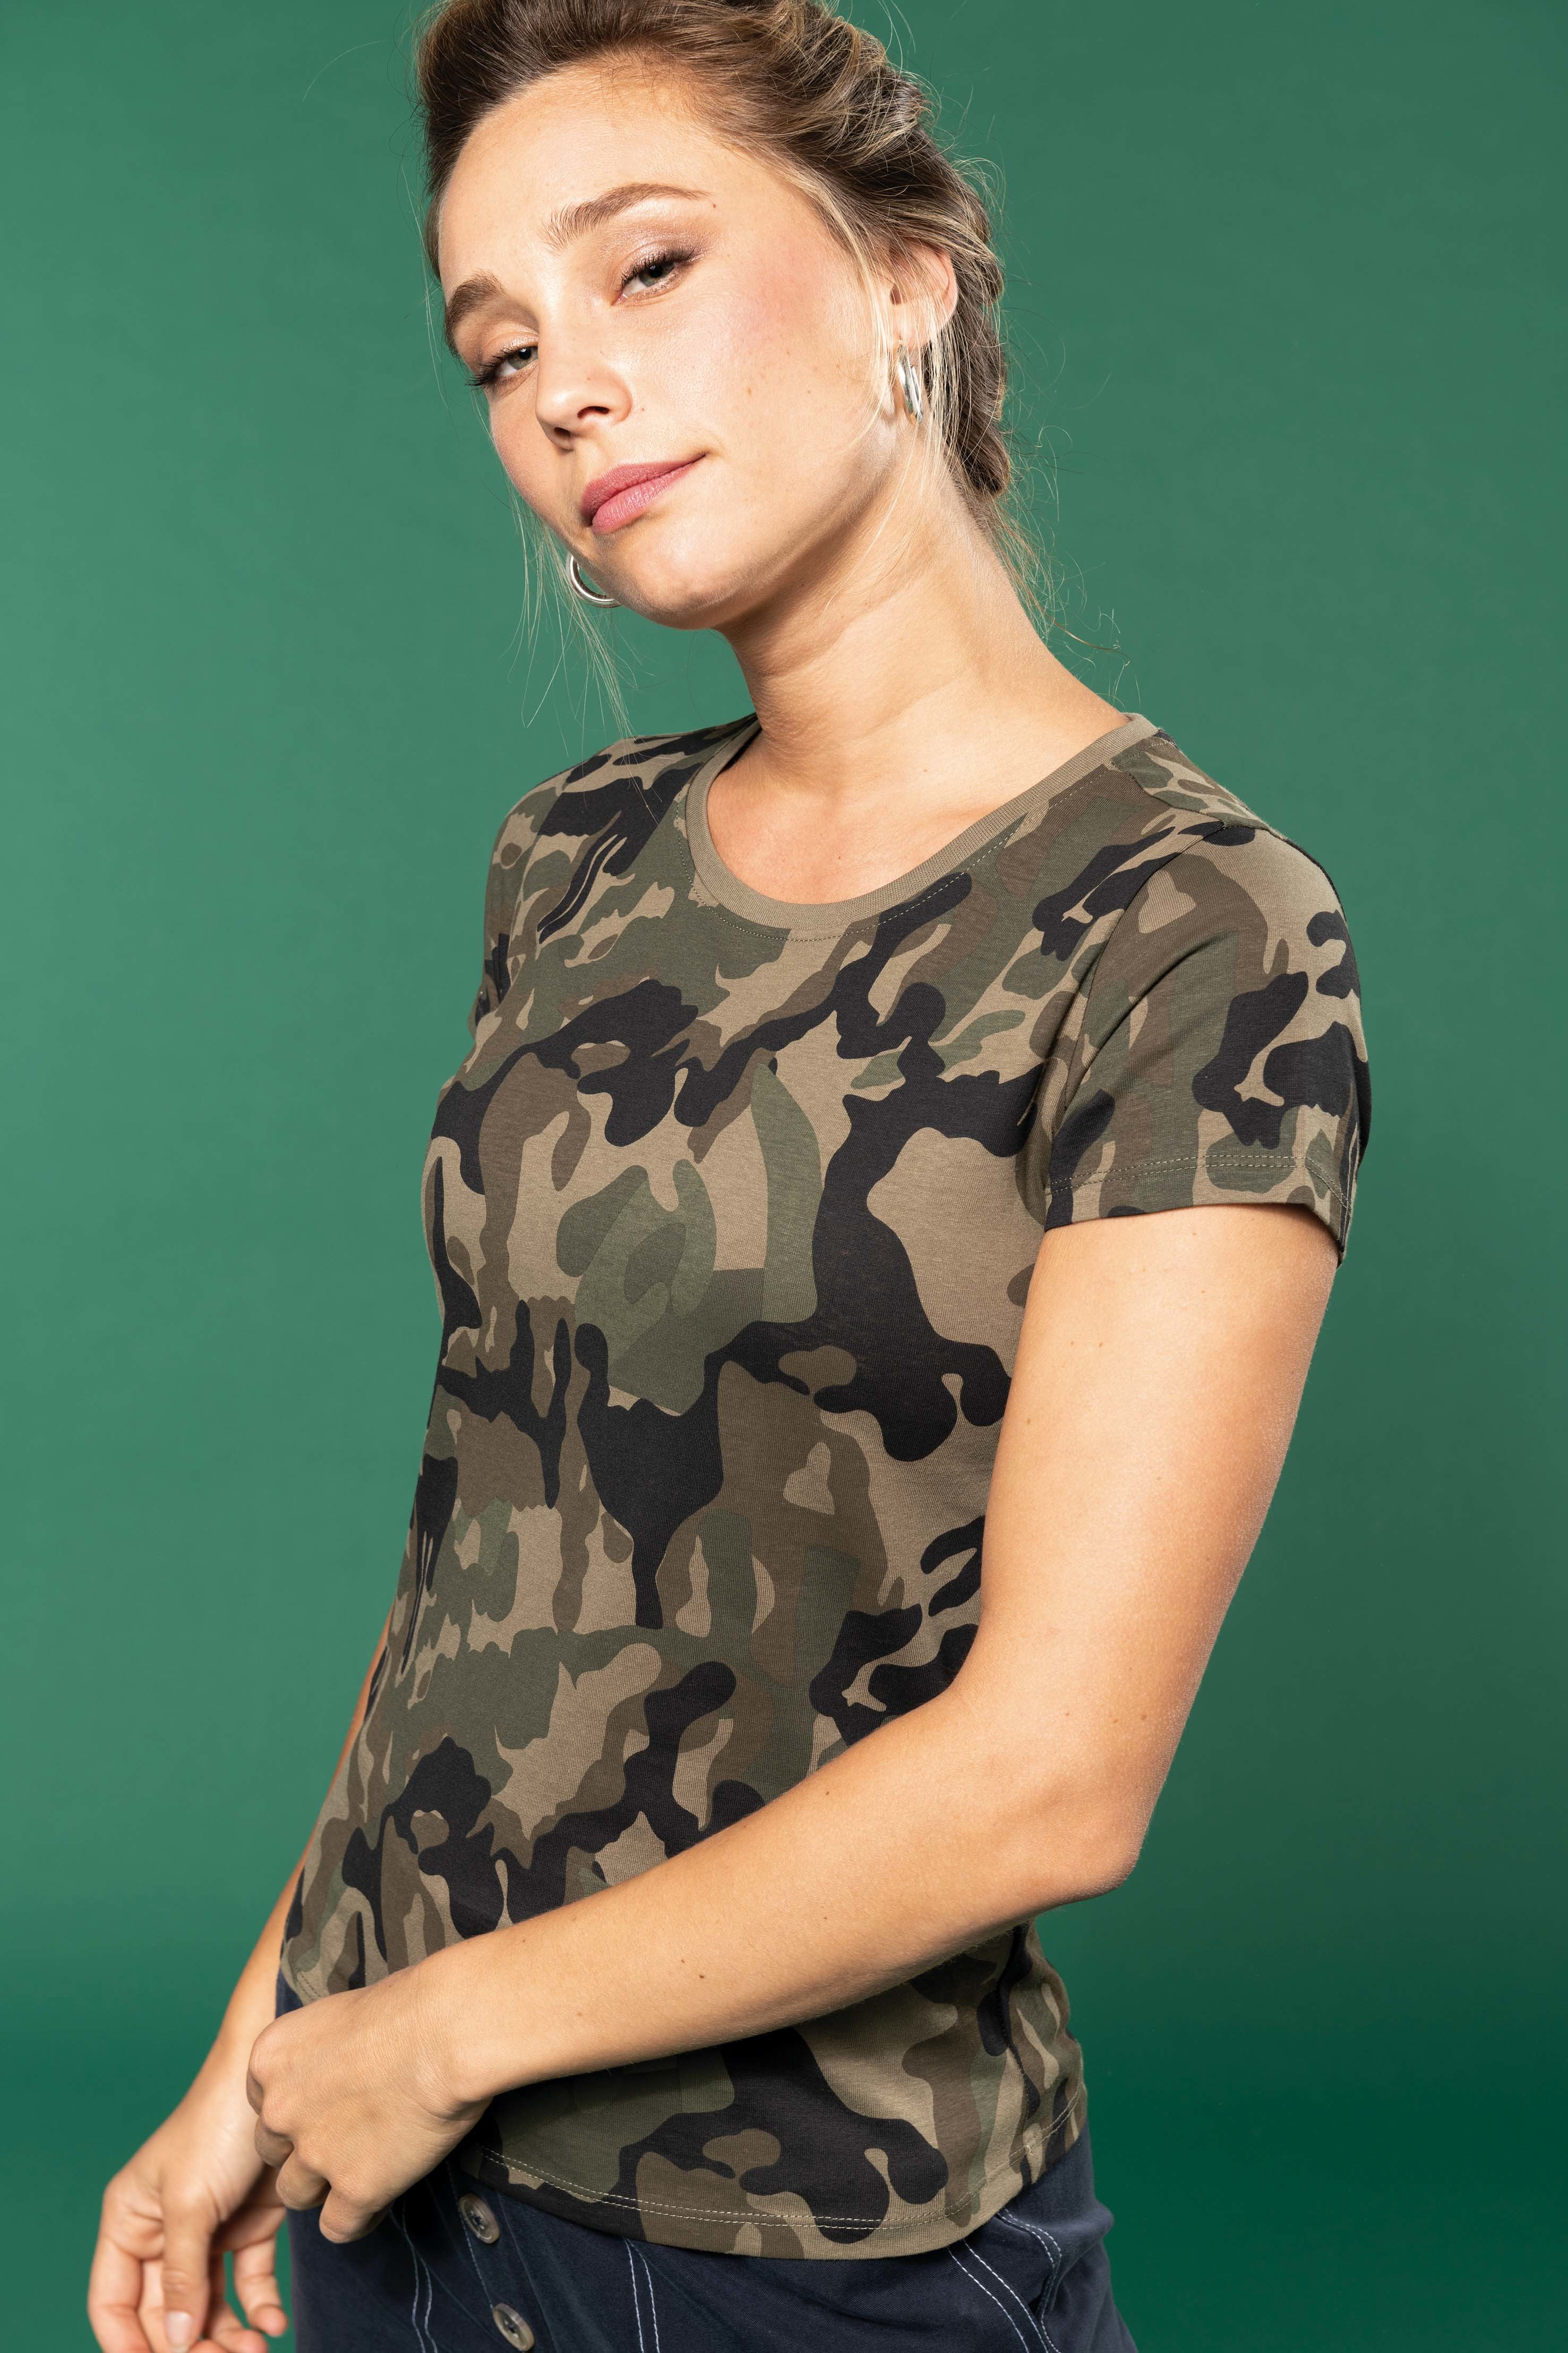 Tee-shirt camouflage manches courtes femme